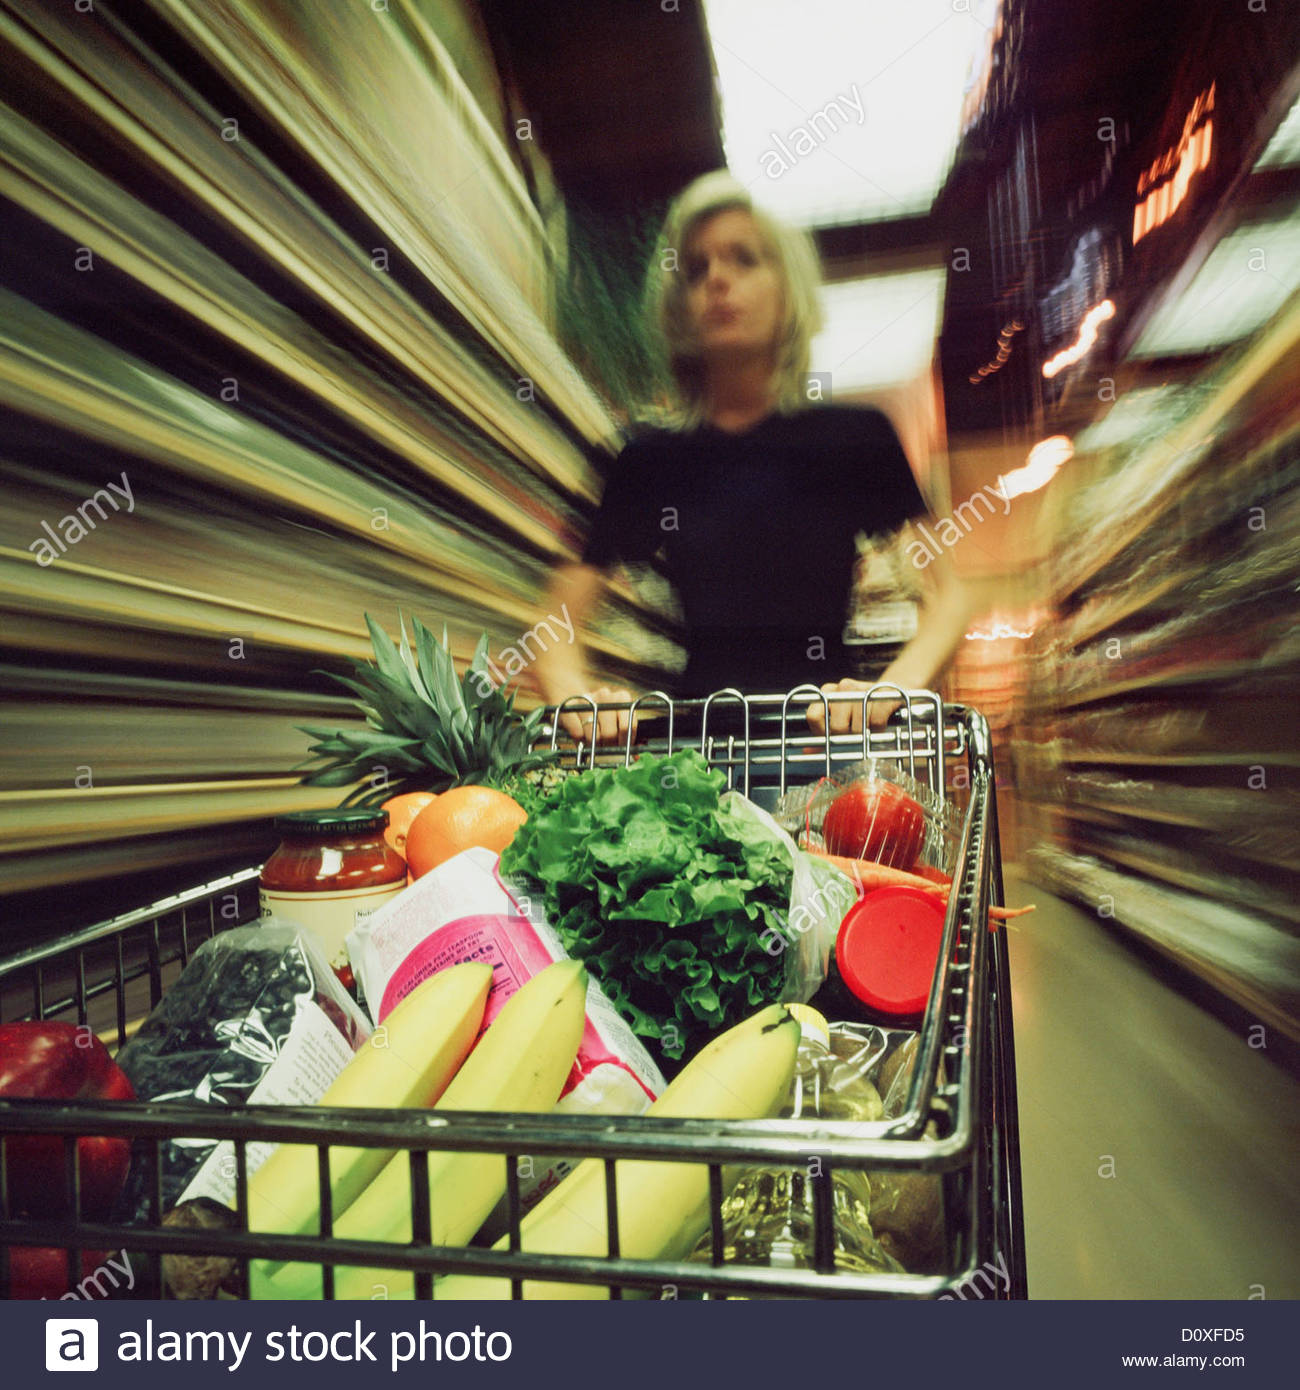 Woman in supermarket with trolley, motion blur - Stock Image